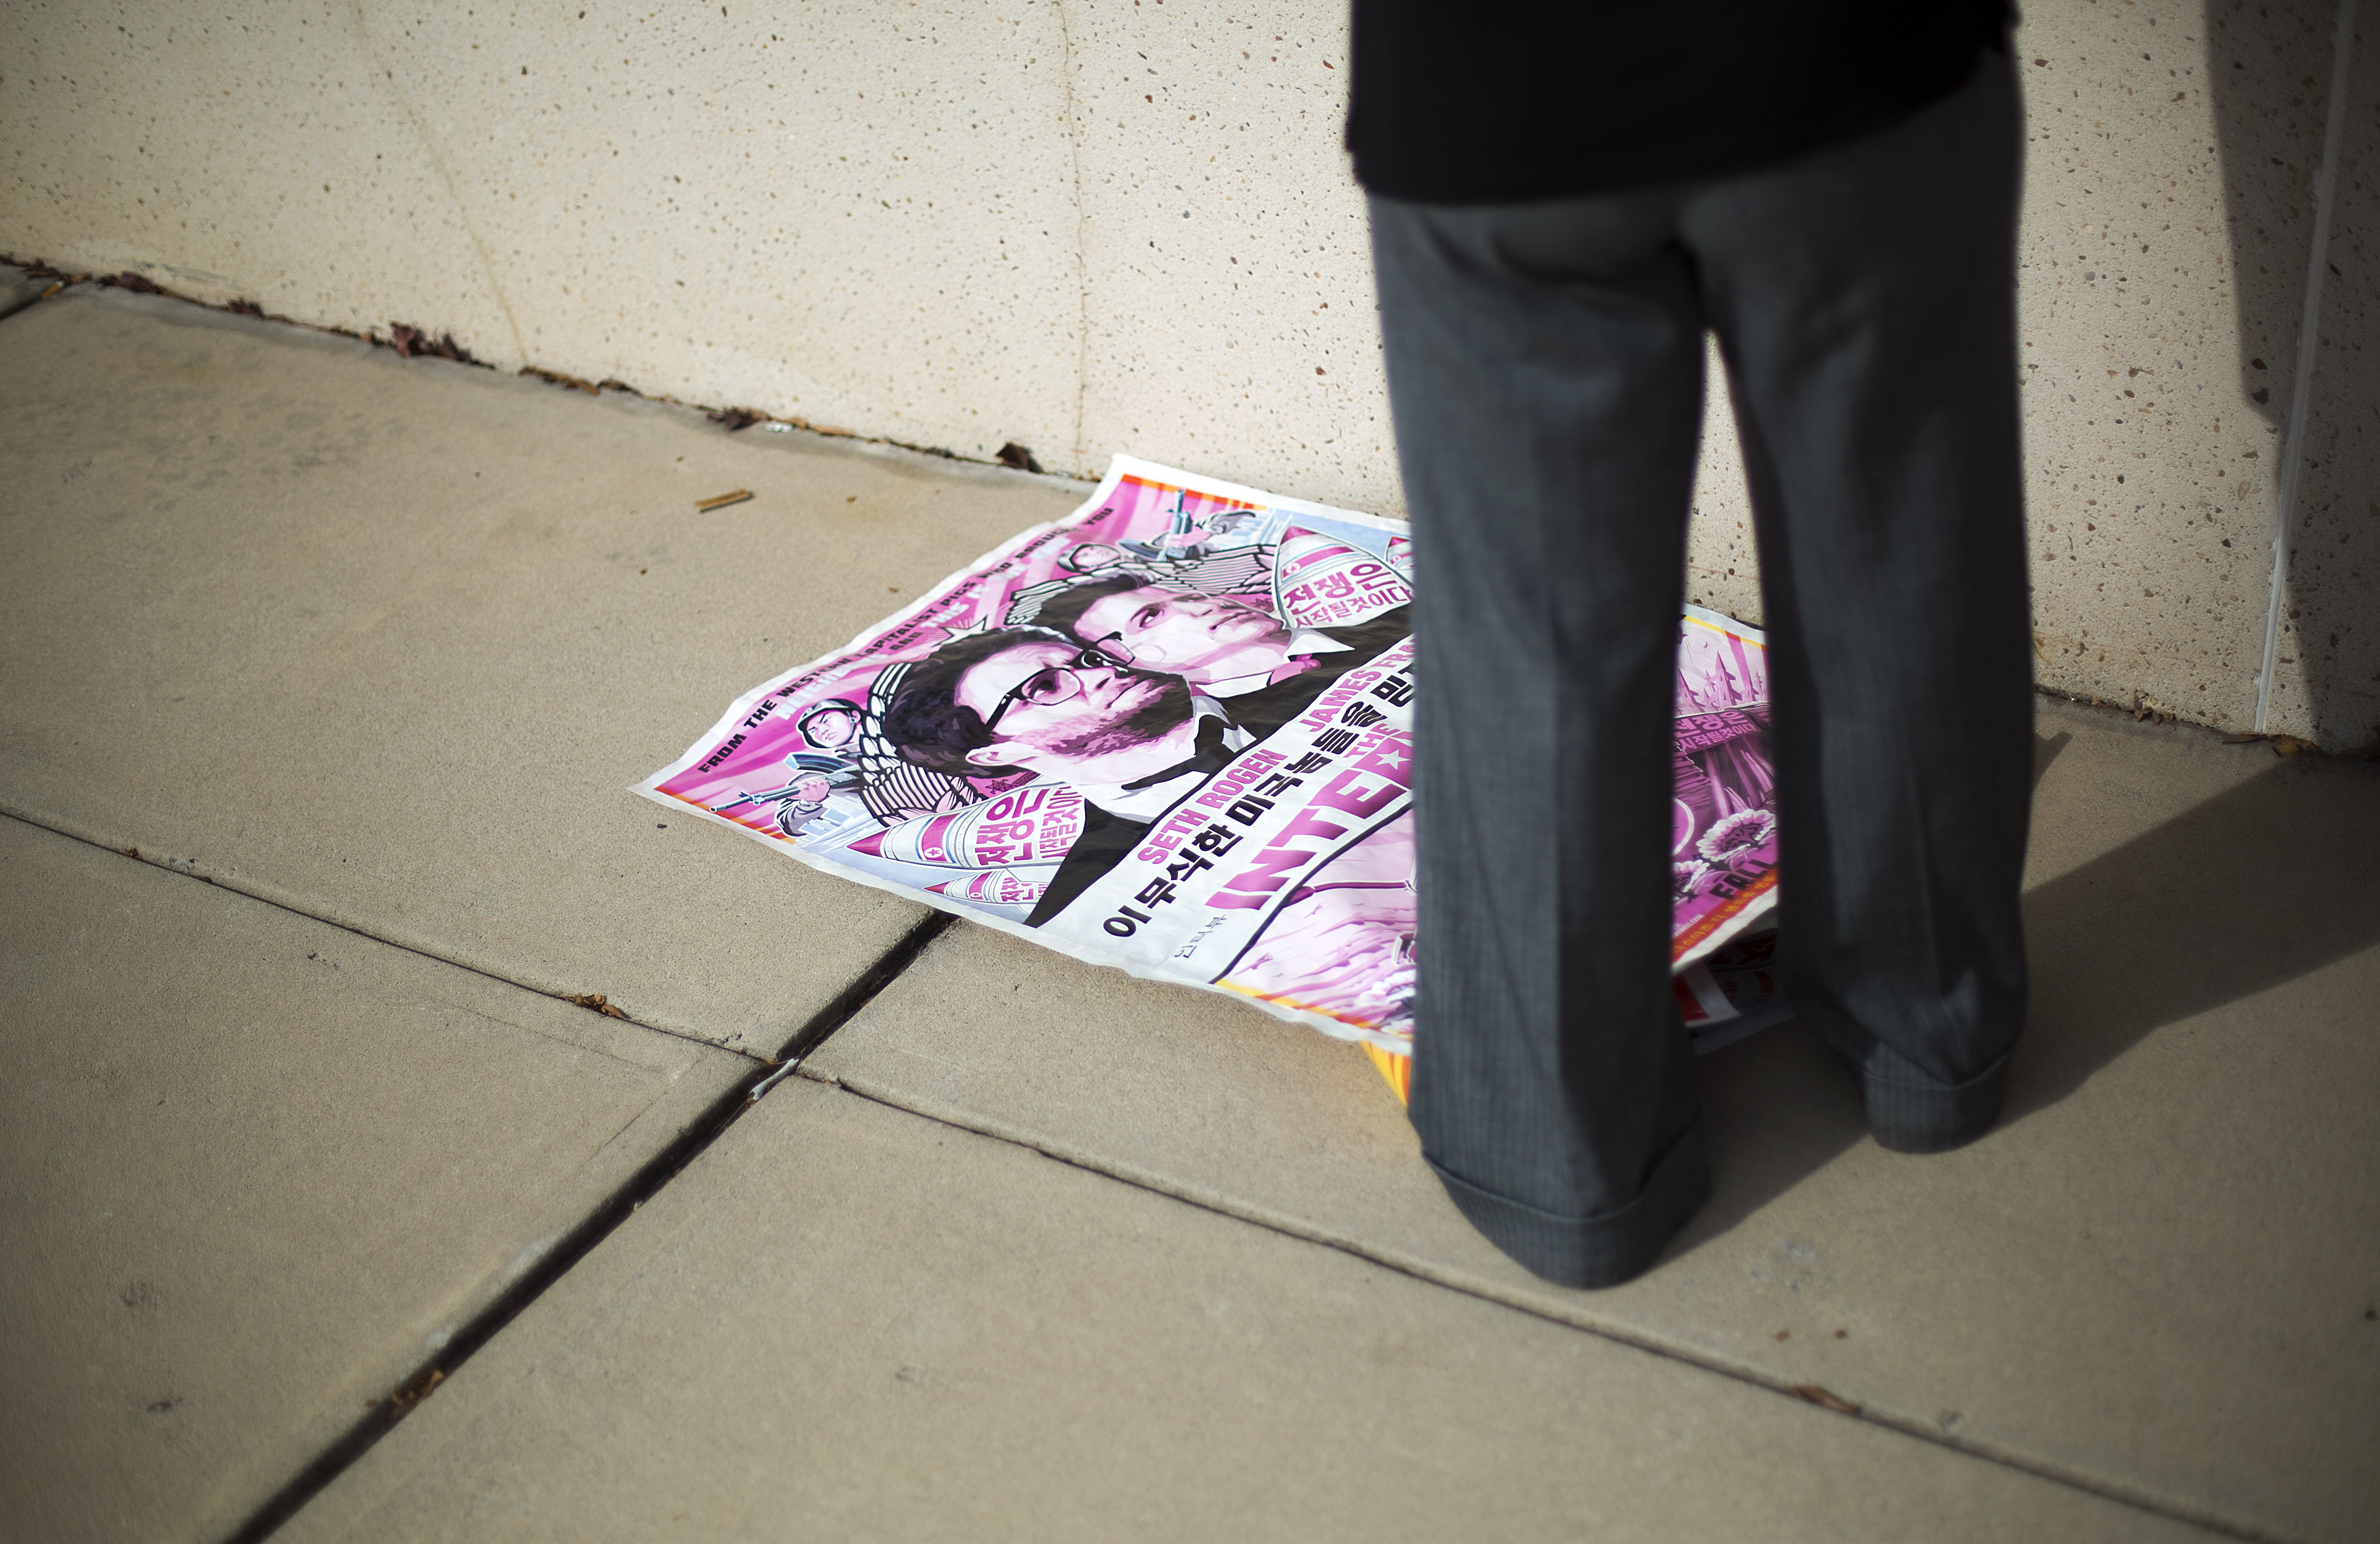 A poster for the movie  The Interview  lays on the ground after being pulled from a display case by a worker at a Carmike Cinemas movie theater on Dec. 17, 2014, in Atlanta.